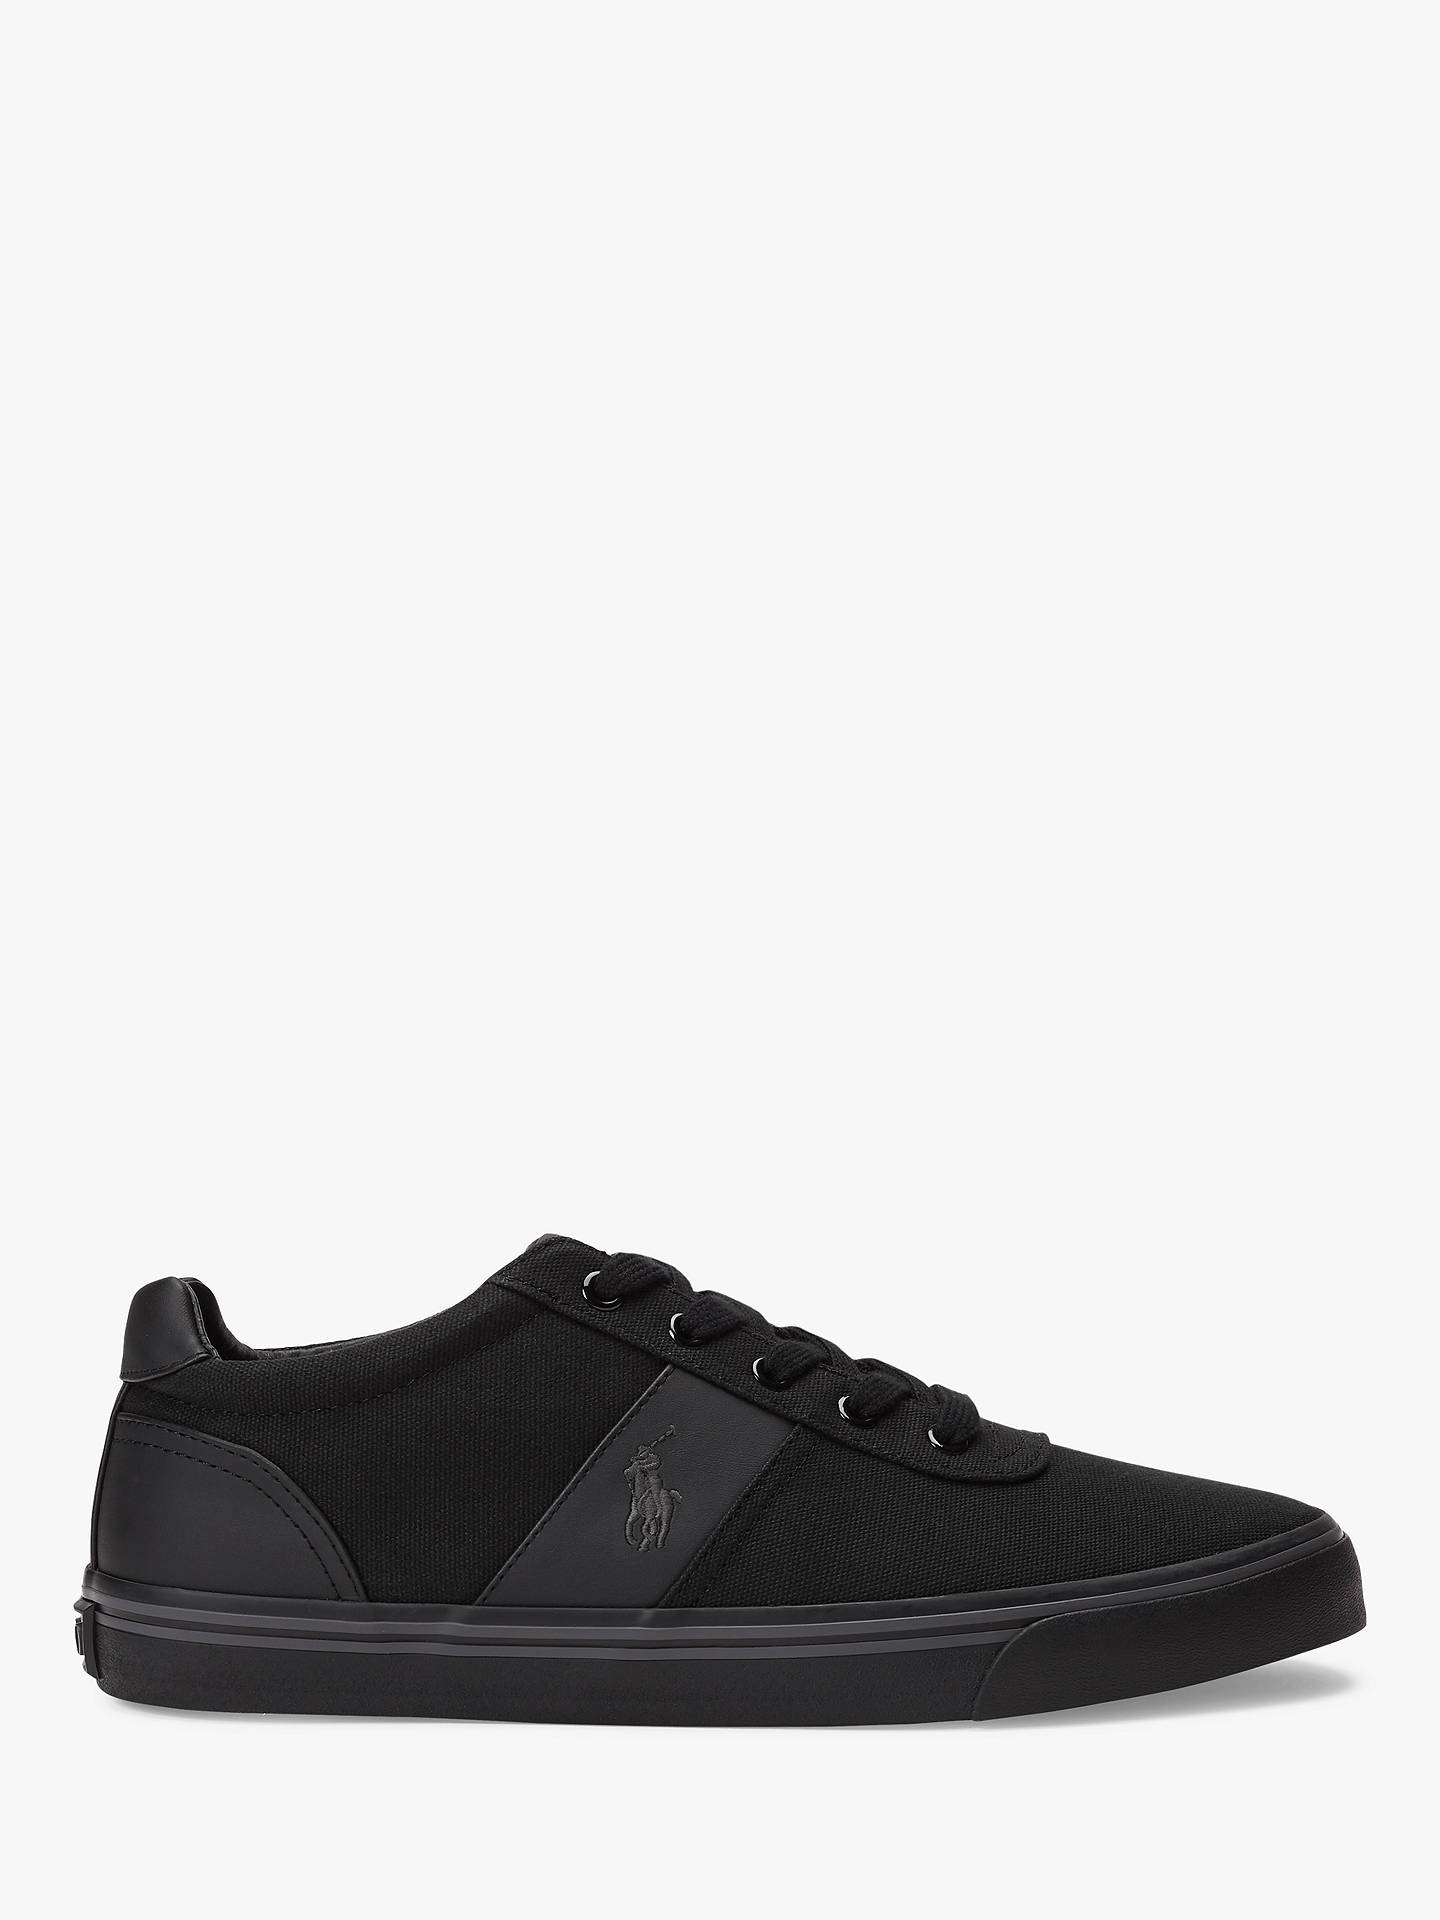 710e84de73ce Polo Ralph Lauren Hanford Canvas Trainers at John Lewis   Partners